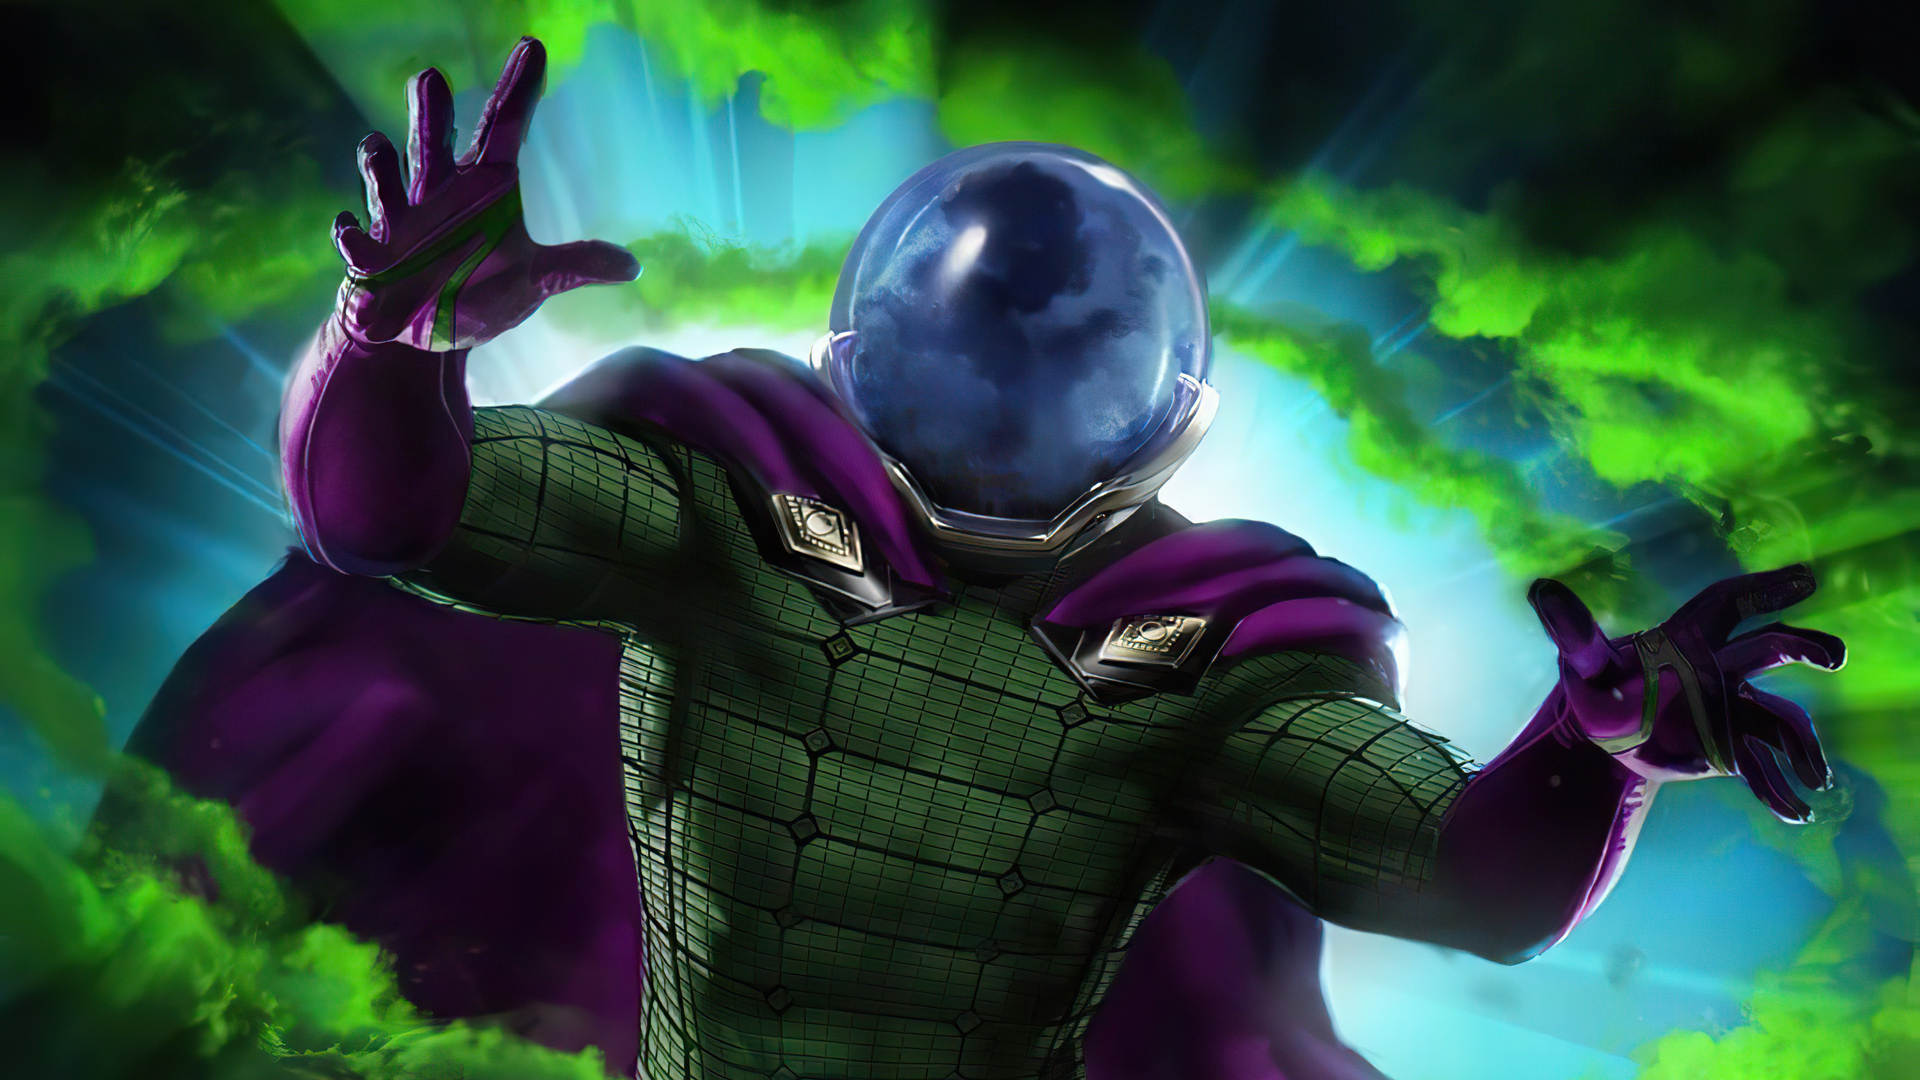 1920x1080 Artwork Mysterio 4k Laptop Full Hd 1080p Hd 4k Wallpapers Images Backgrounds Photos And Pictures